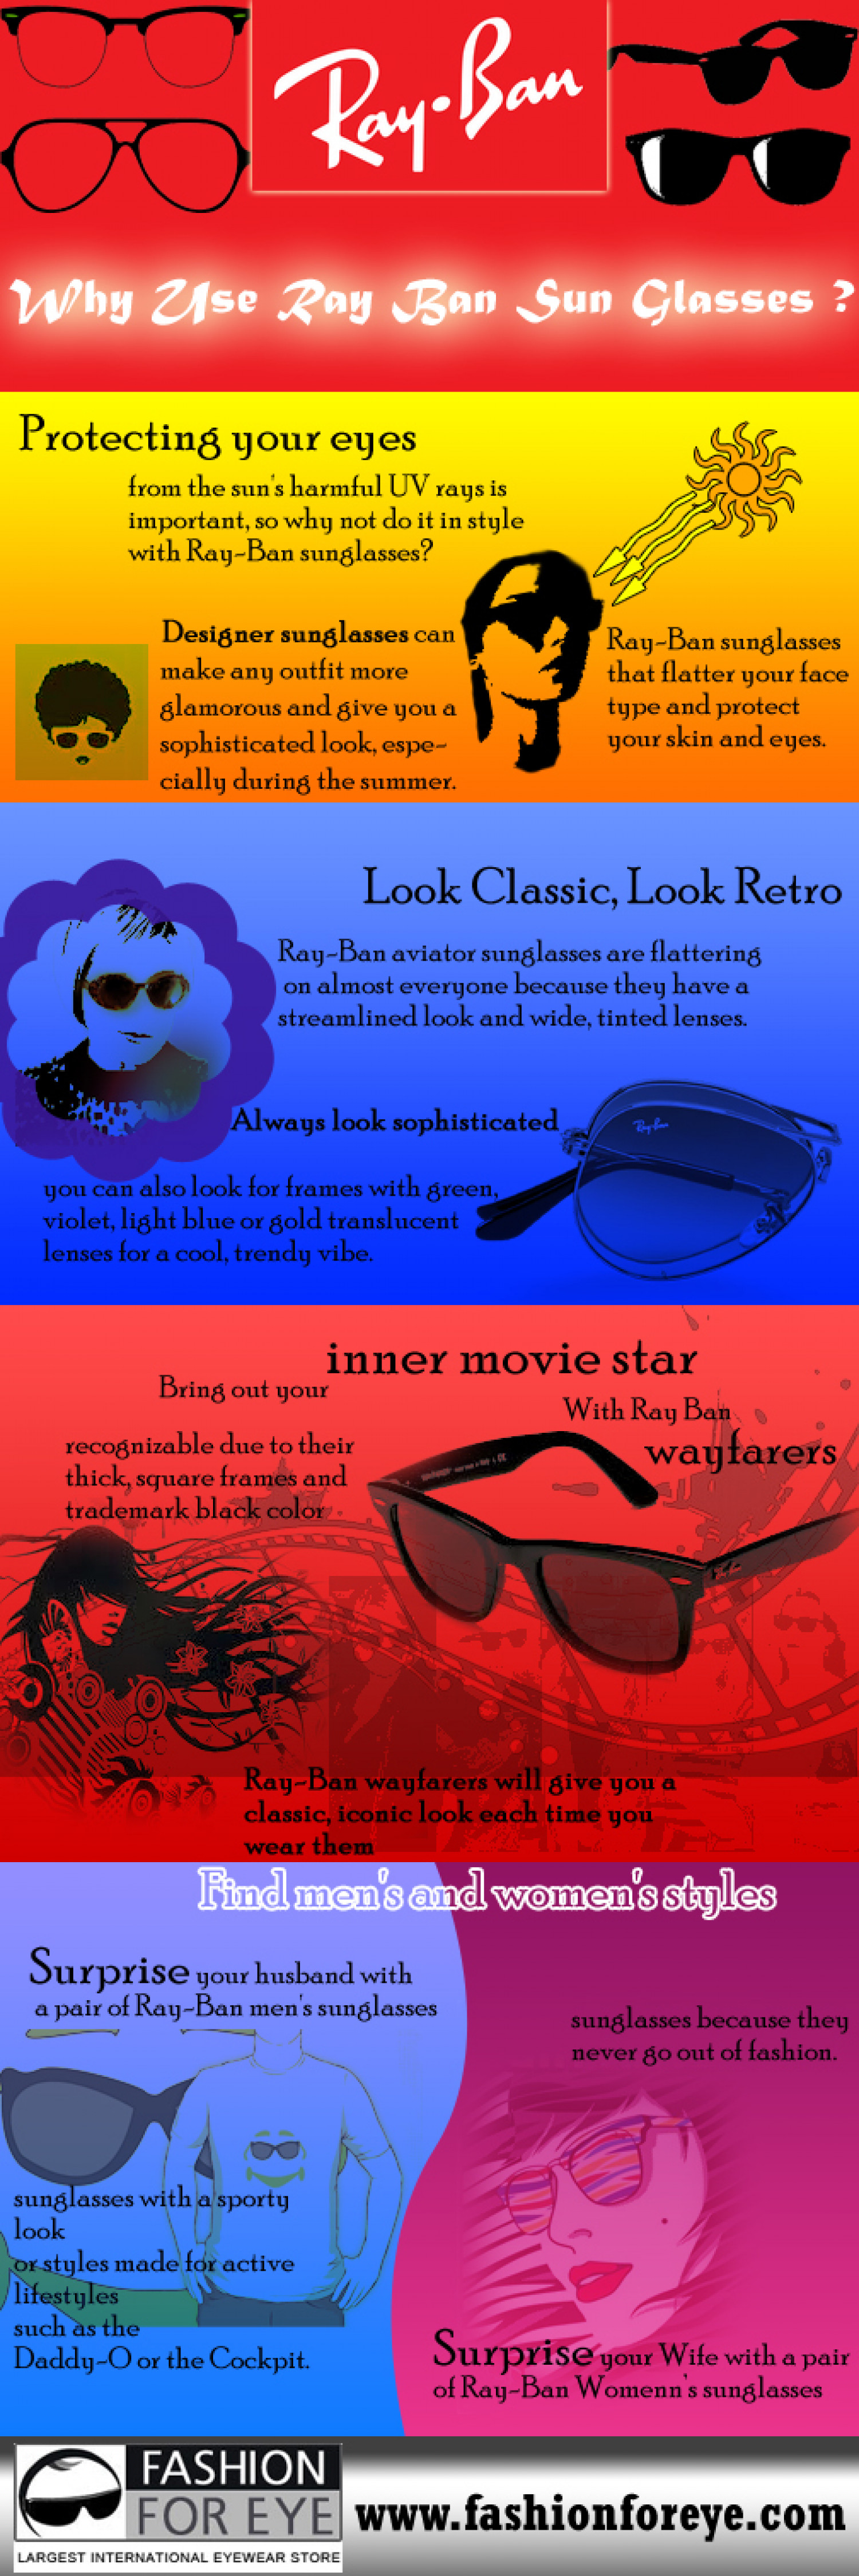 Why use Ray Ban Sunglasses – Some facts and figures  Infographic